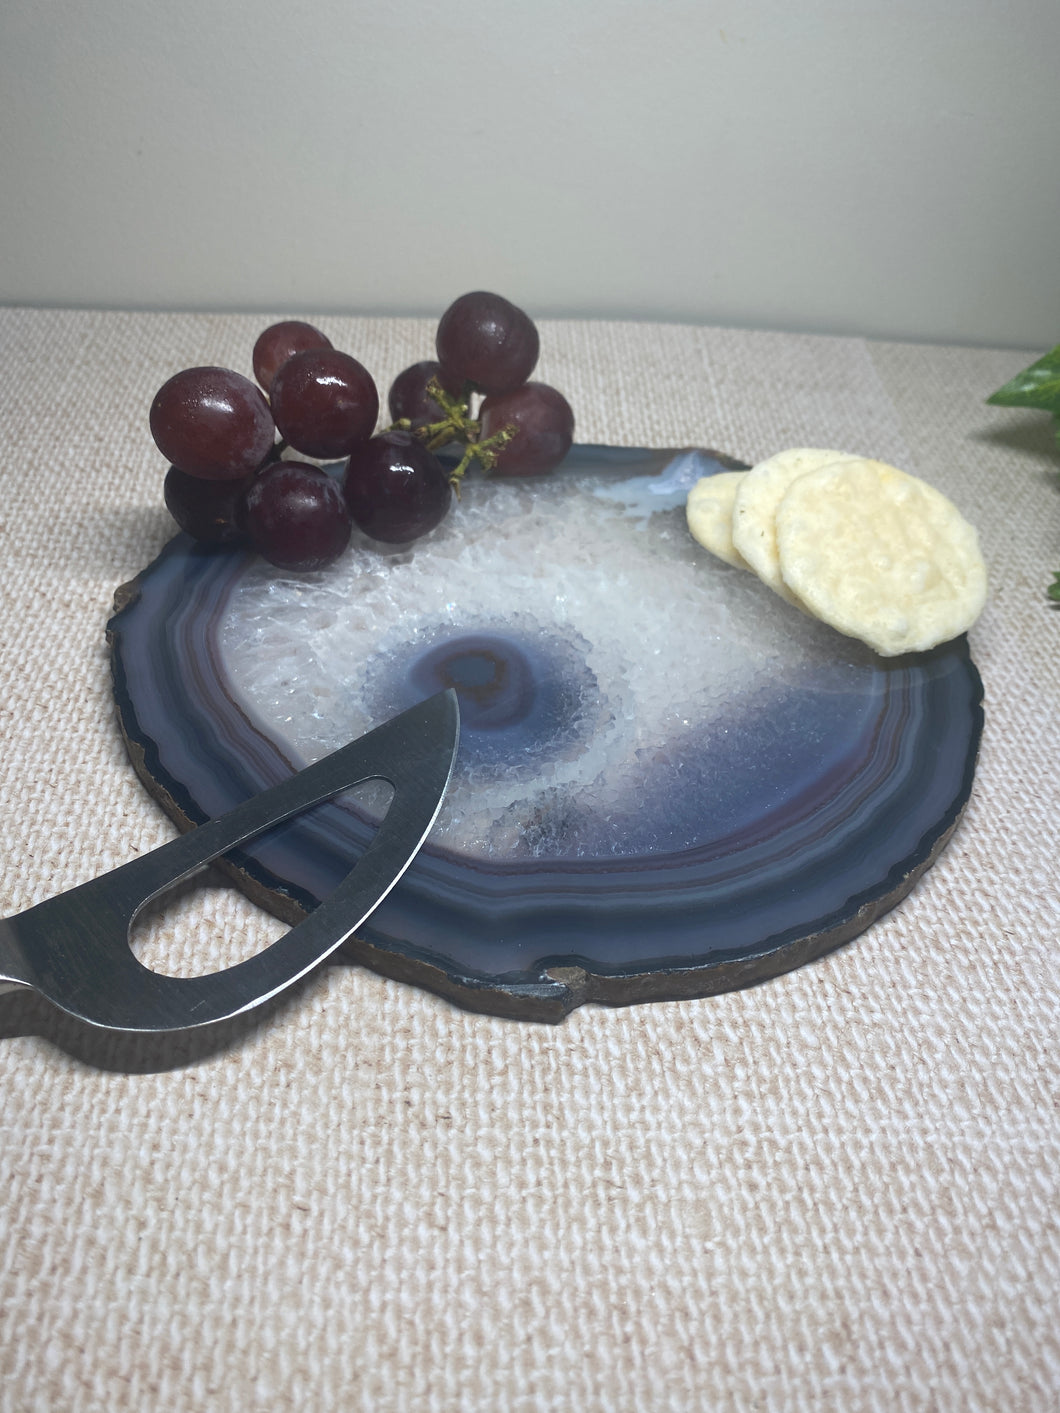 Polished Natural Agate slice - small cheese board or serving platter